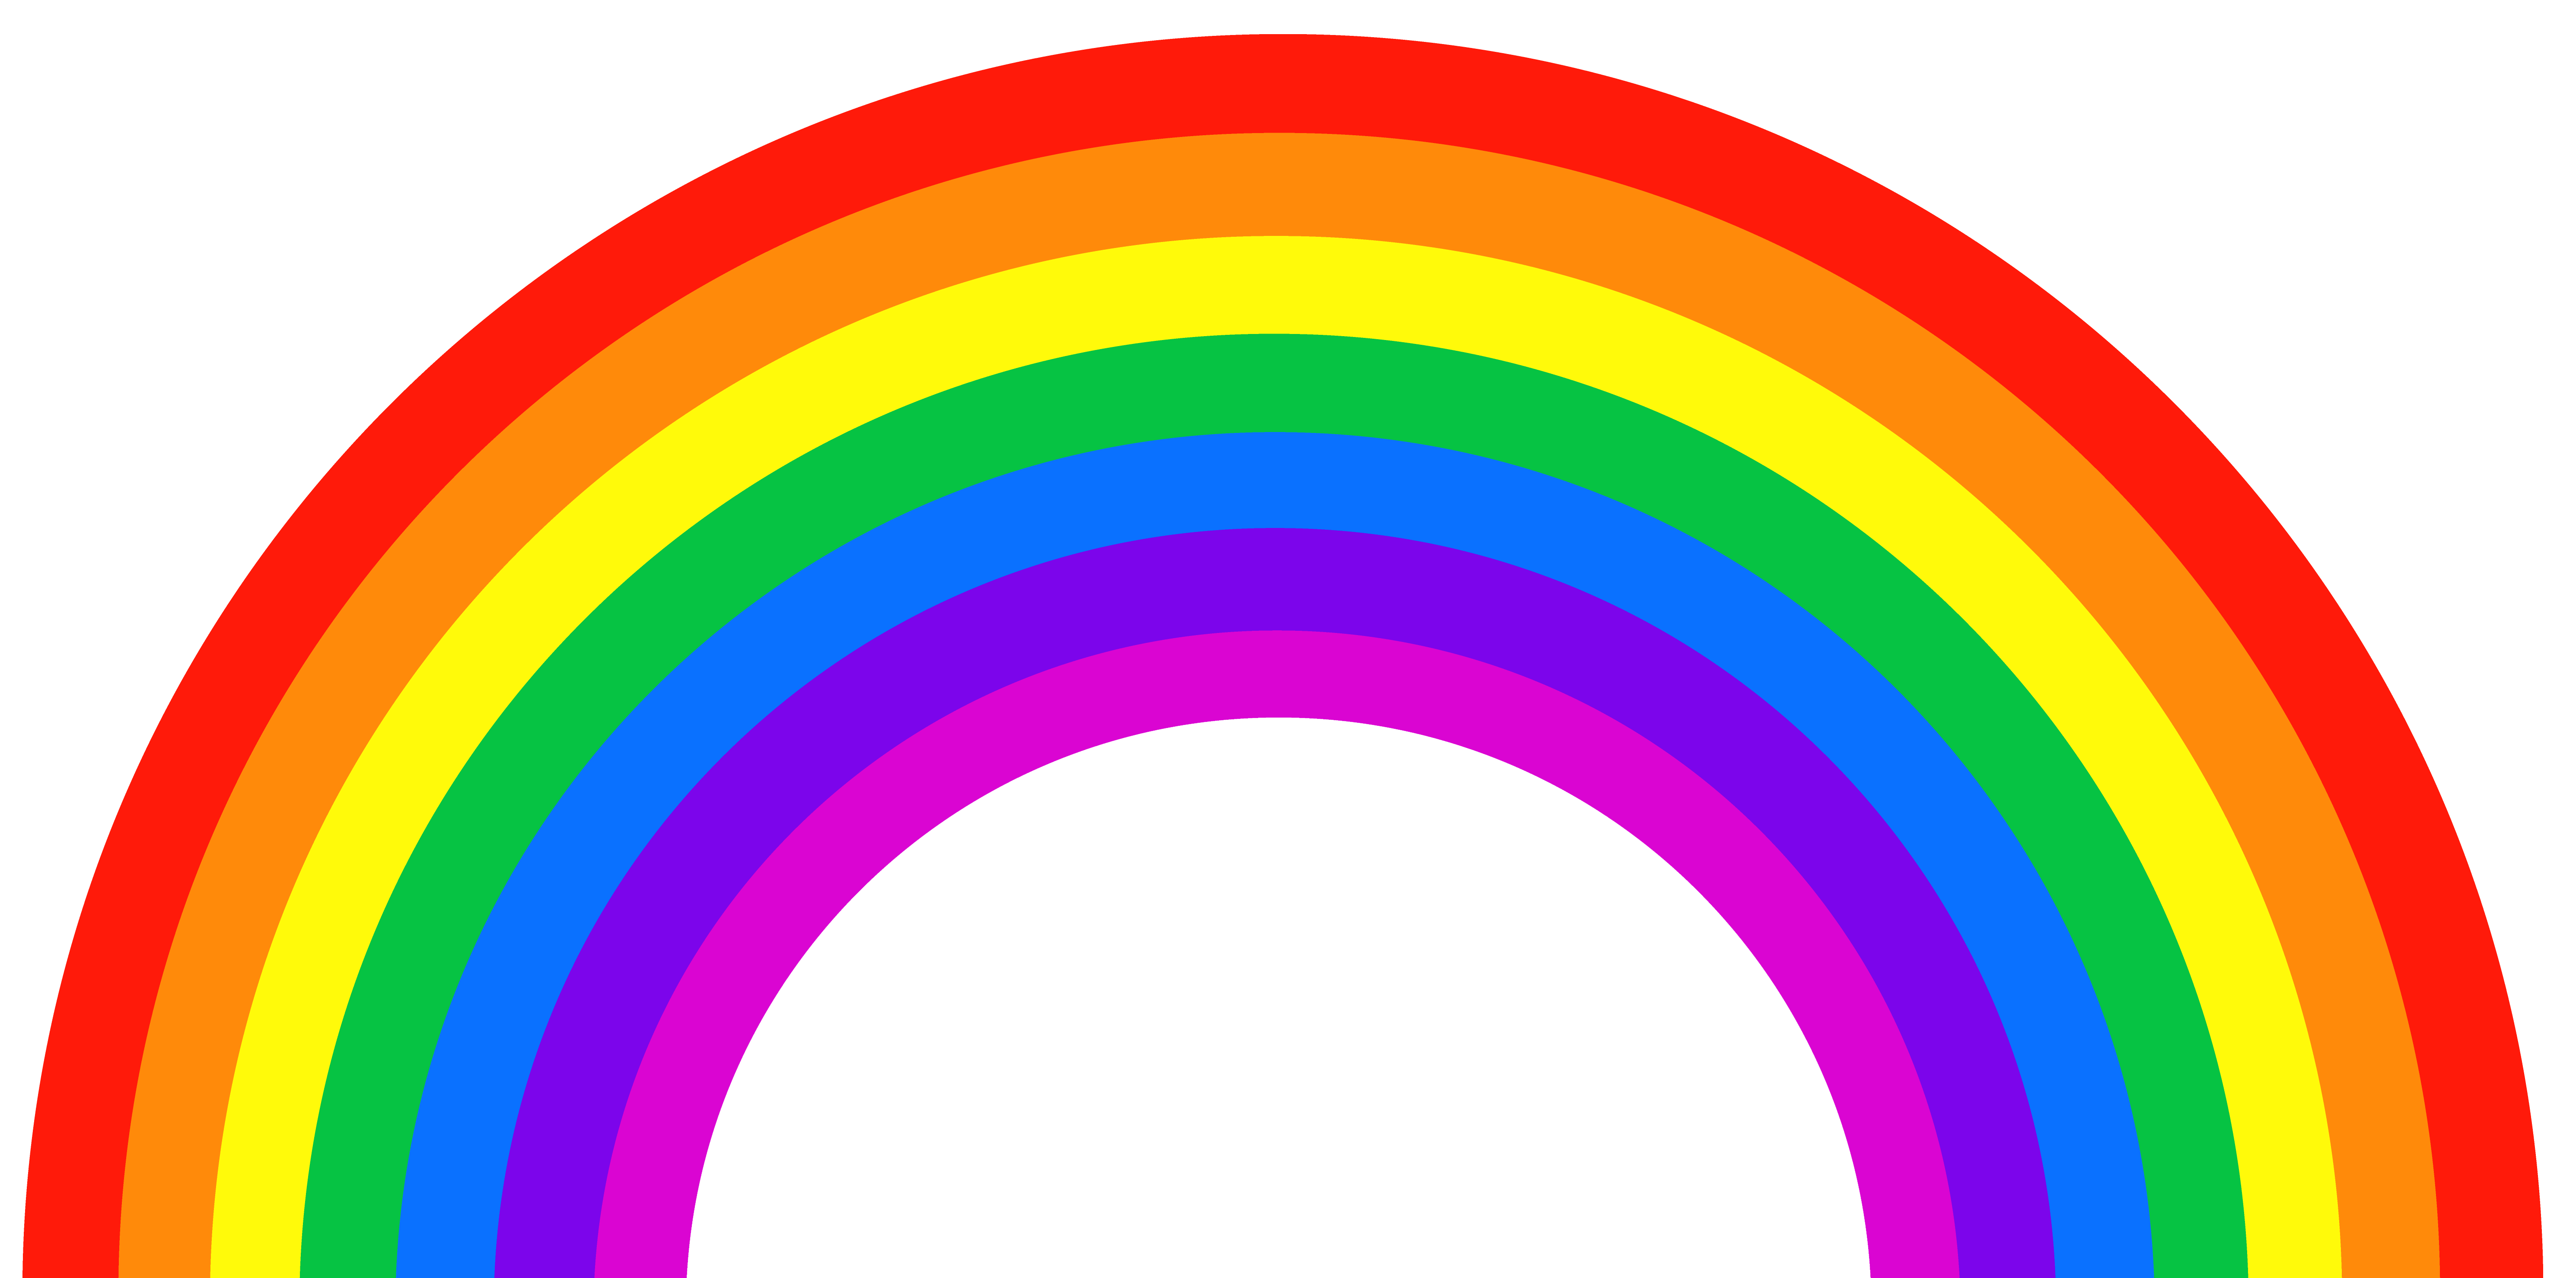 Png picture gallery yopriceville. Clipart rainbow